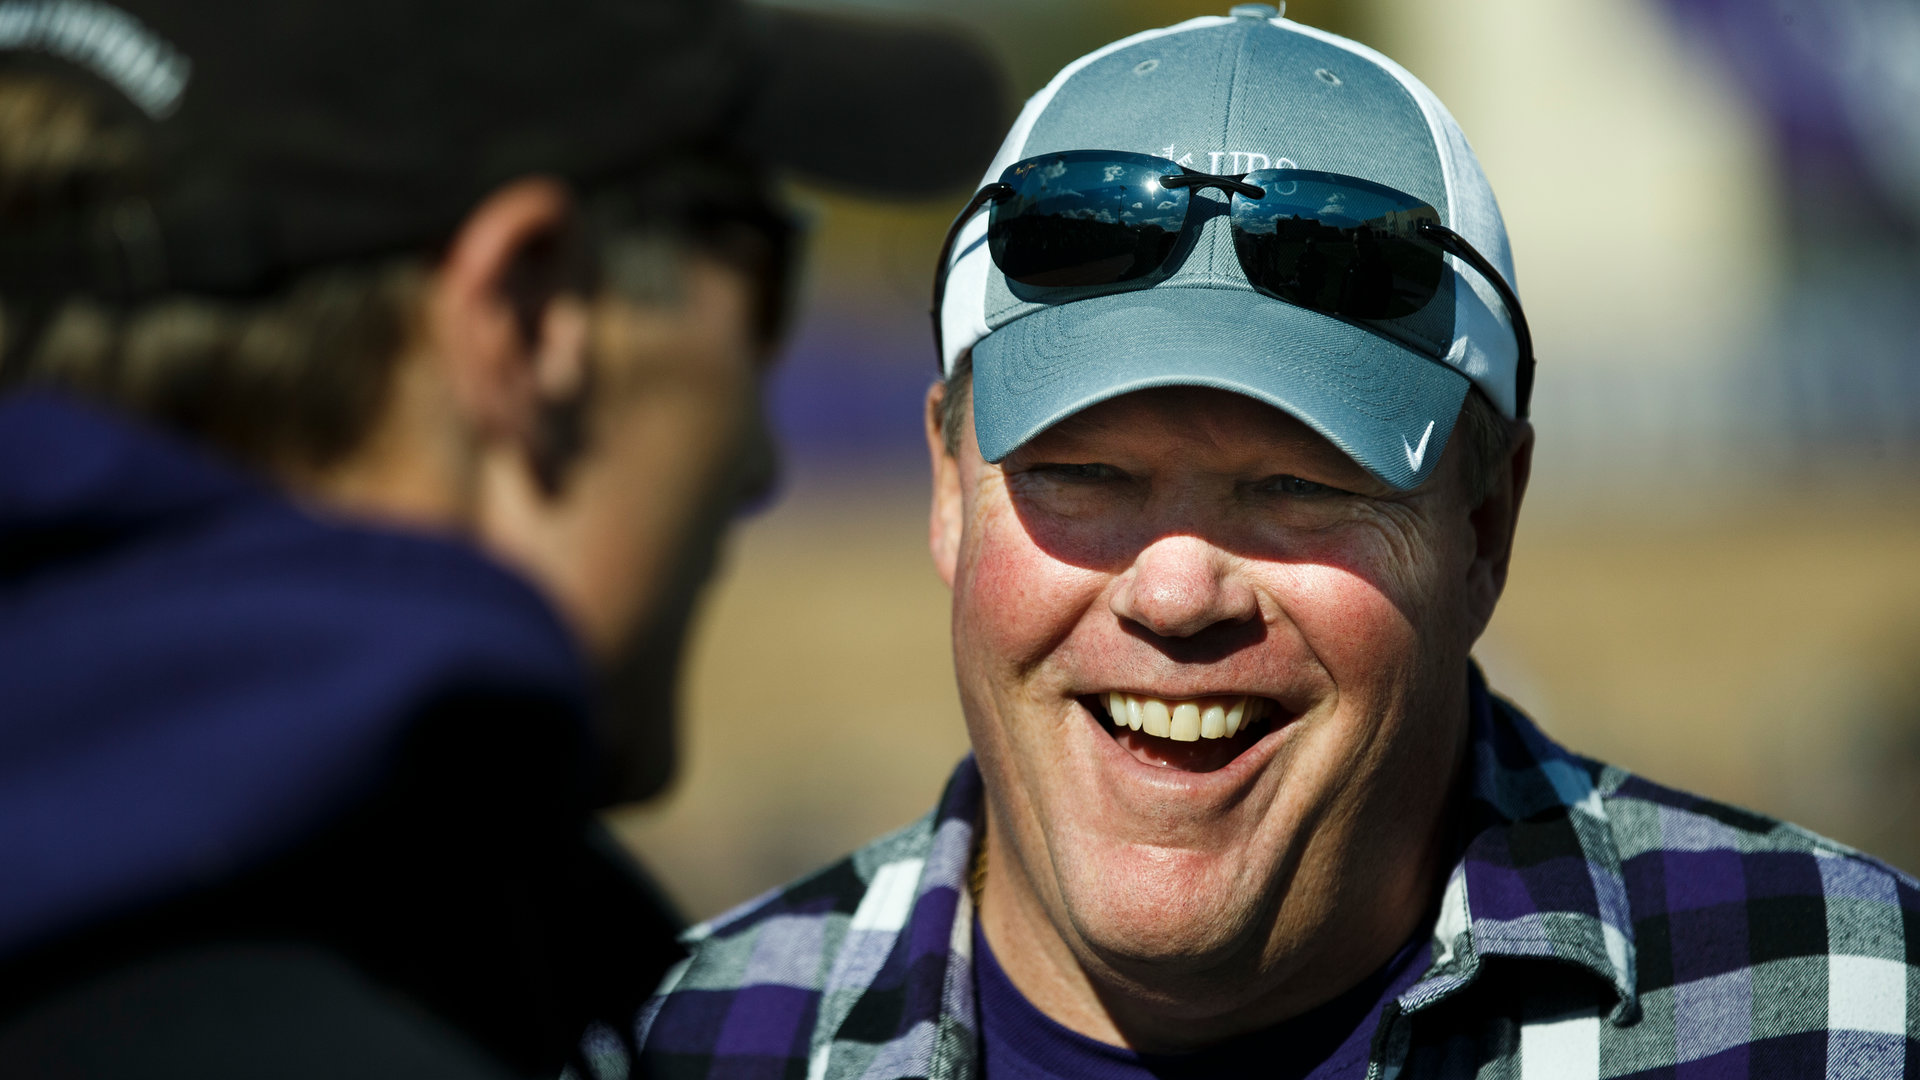 Alum Chip Connelly laughs as he is honored at half time of a football game against Bethel University October 24, 2015 at O'Shaughnessy Stadium.